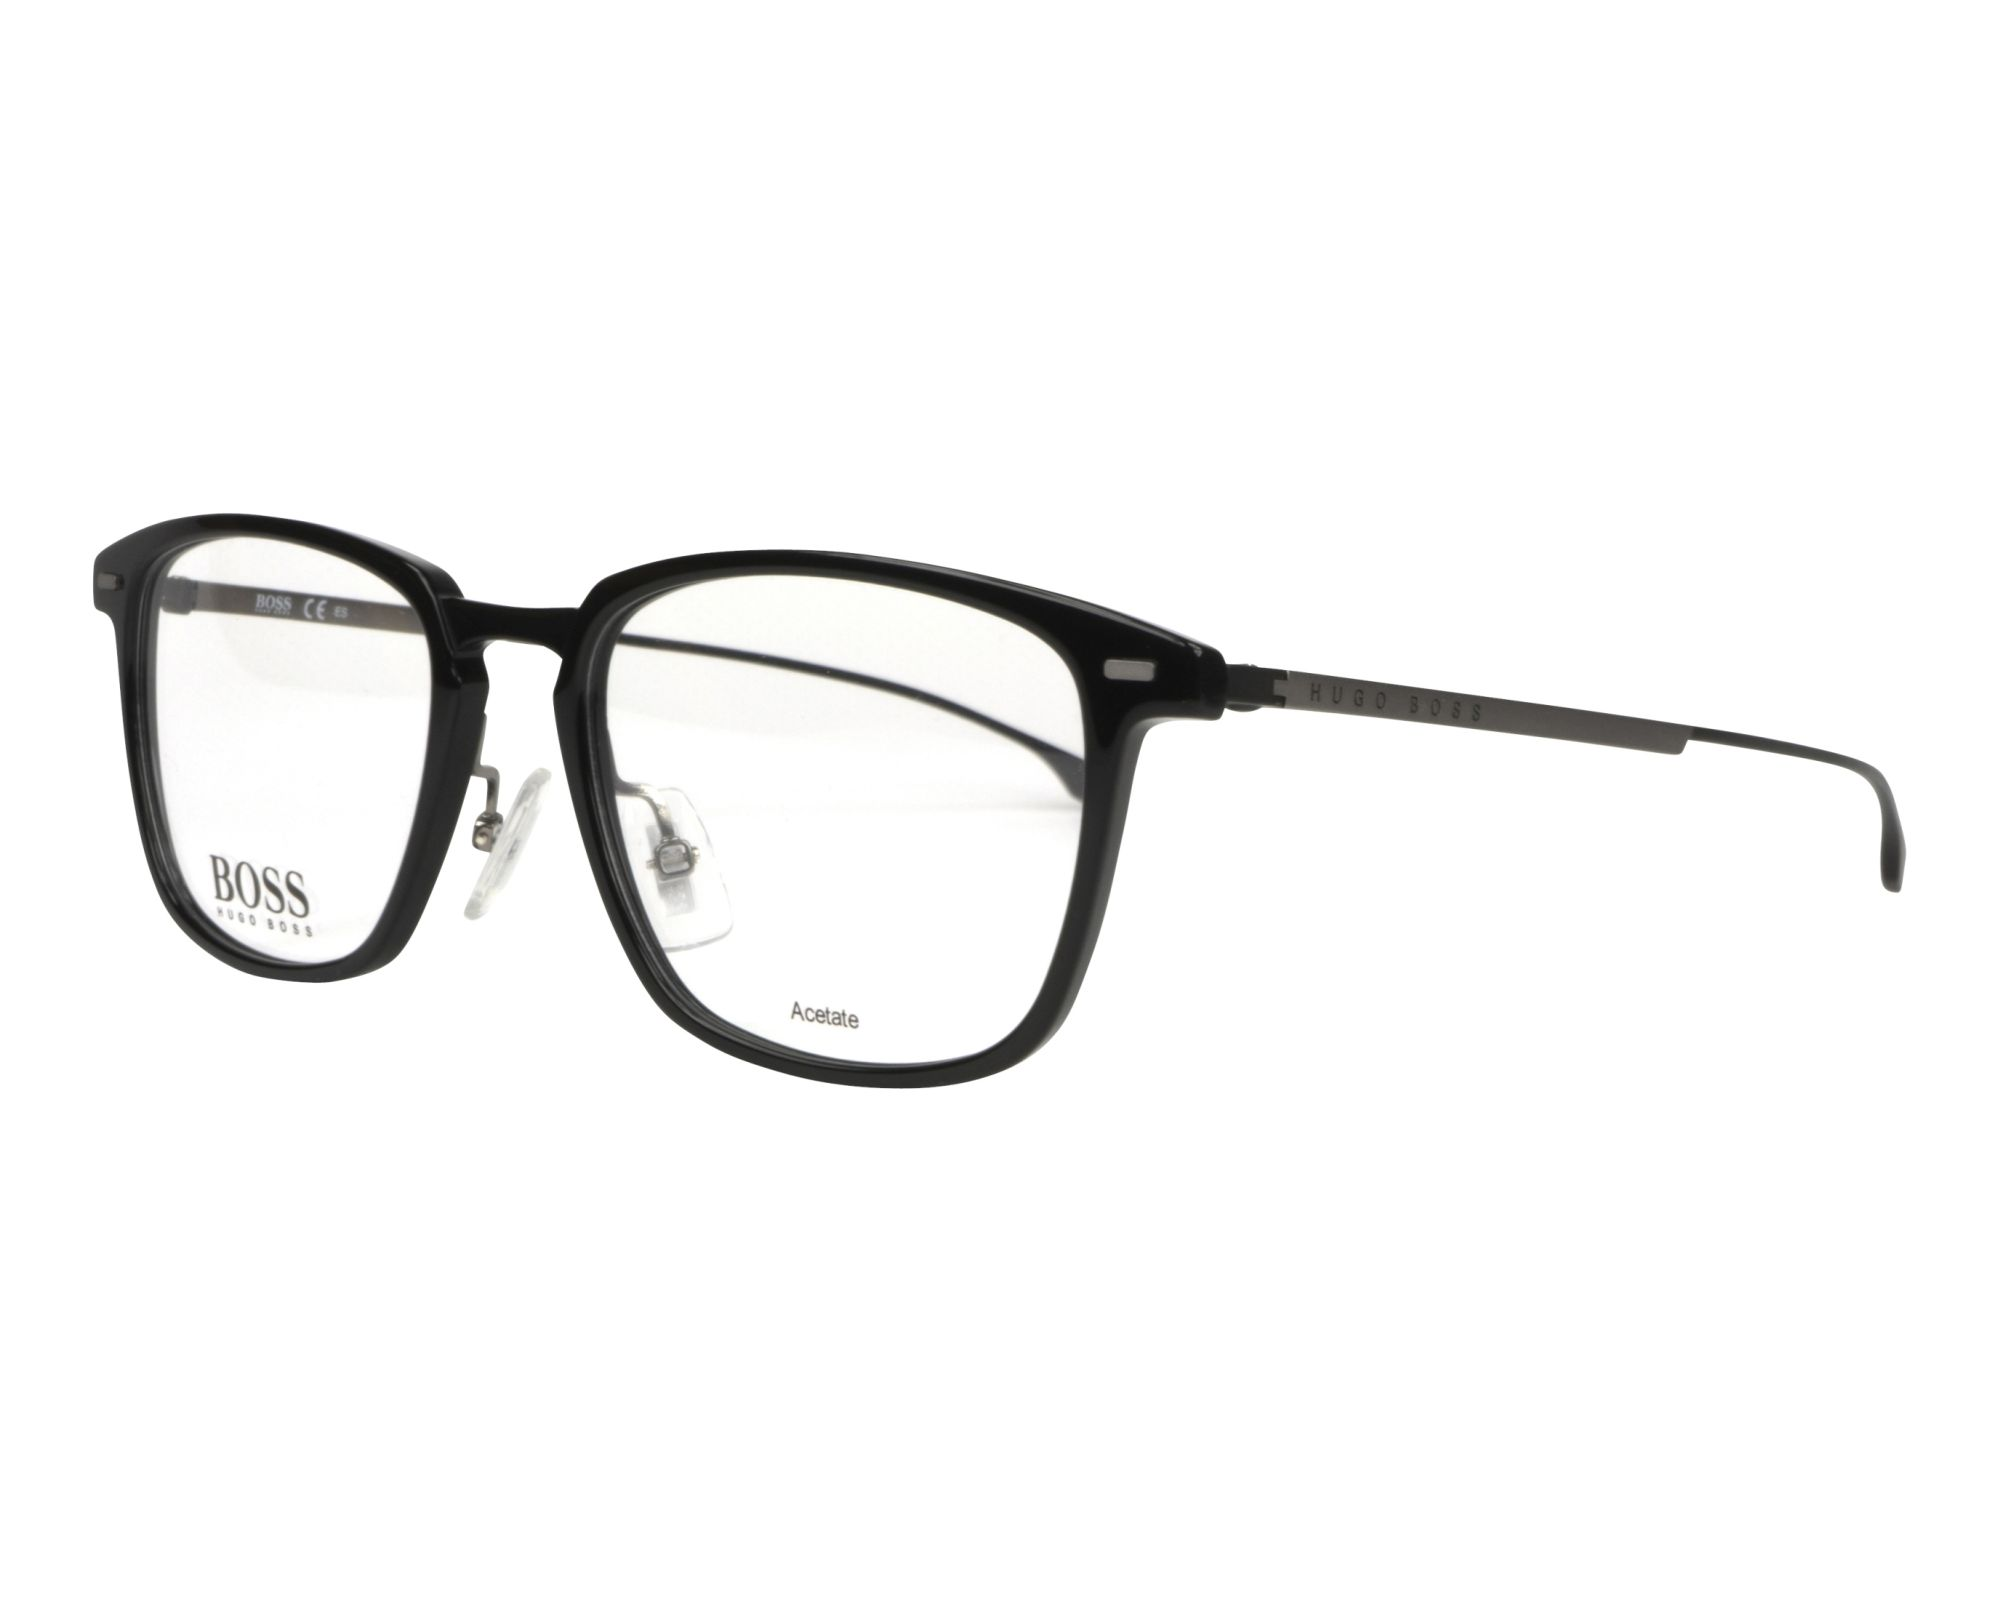 7707fc36a3e eyeglasses Hugo Boss BOSS-0975 807 51-18 Black Gun profile view